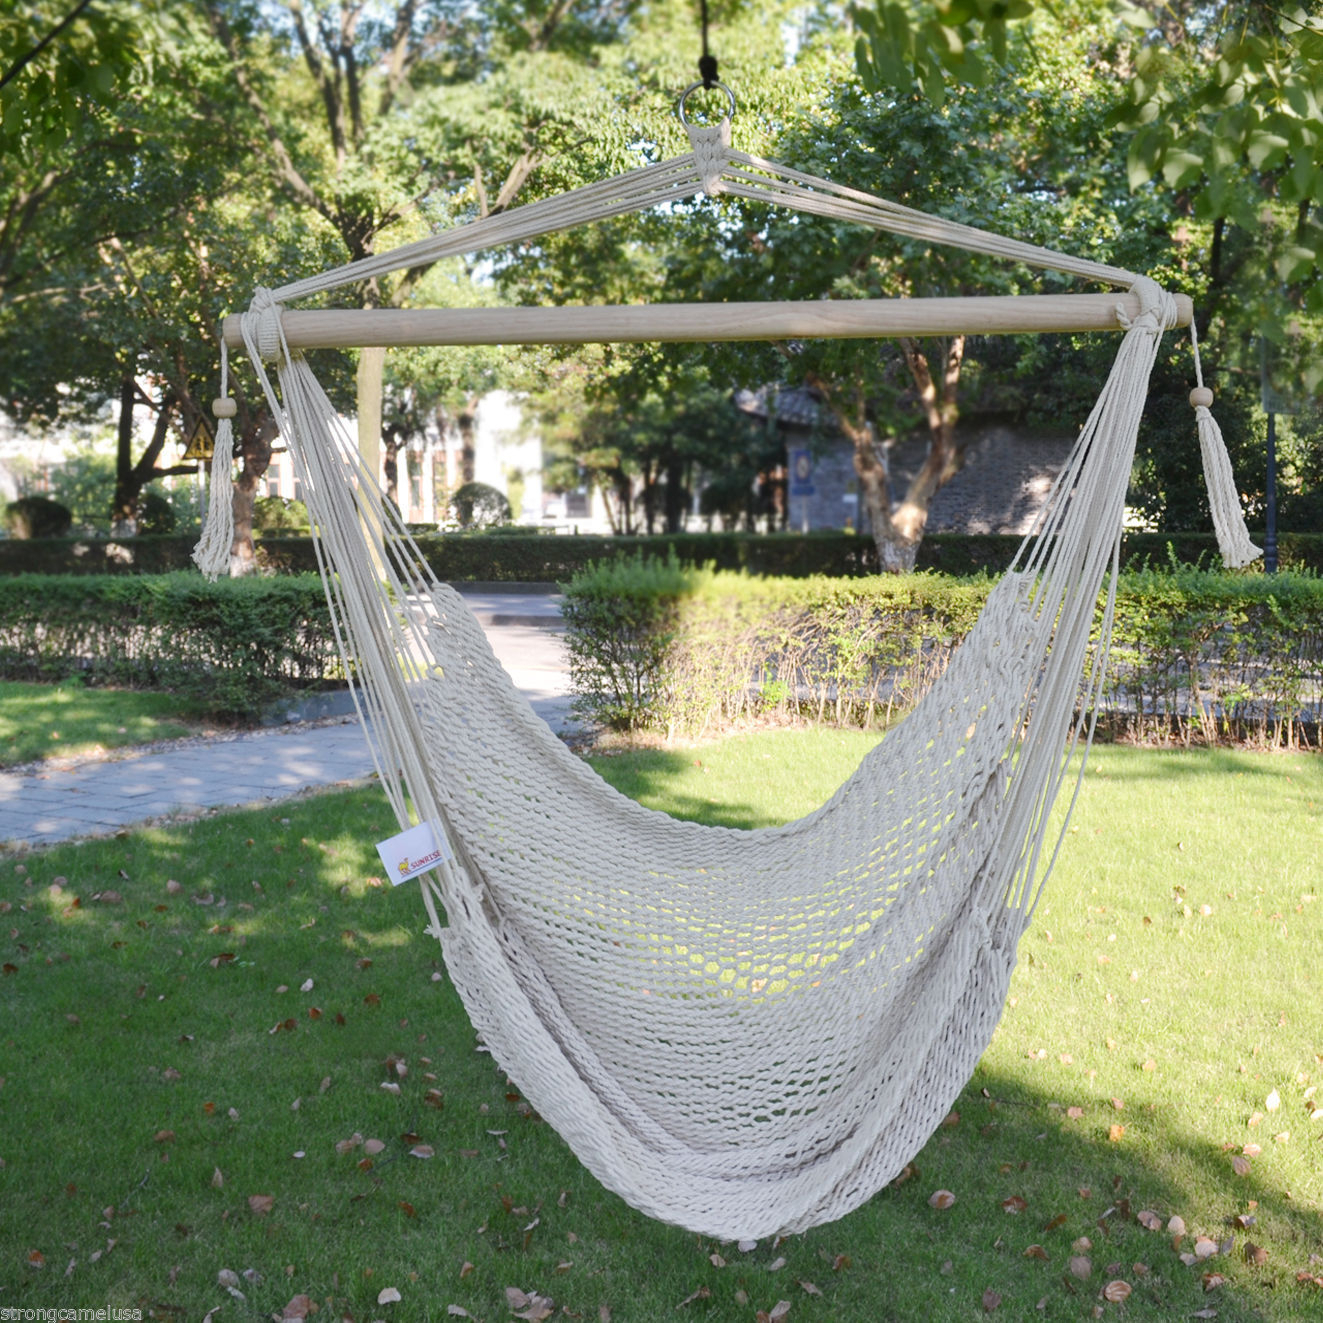 Brand New Hanging Swing Cotton Rope Hammock Chair Patio Porch Garden Outdoor Throughout Cotton Porch Swings (View 25 of 25)